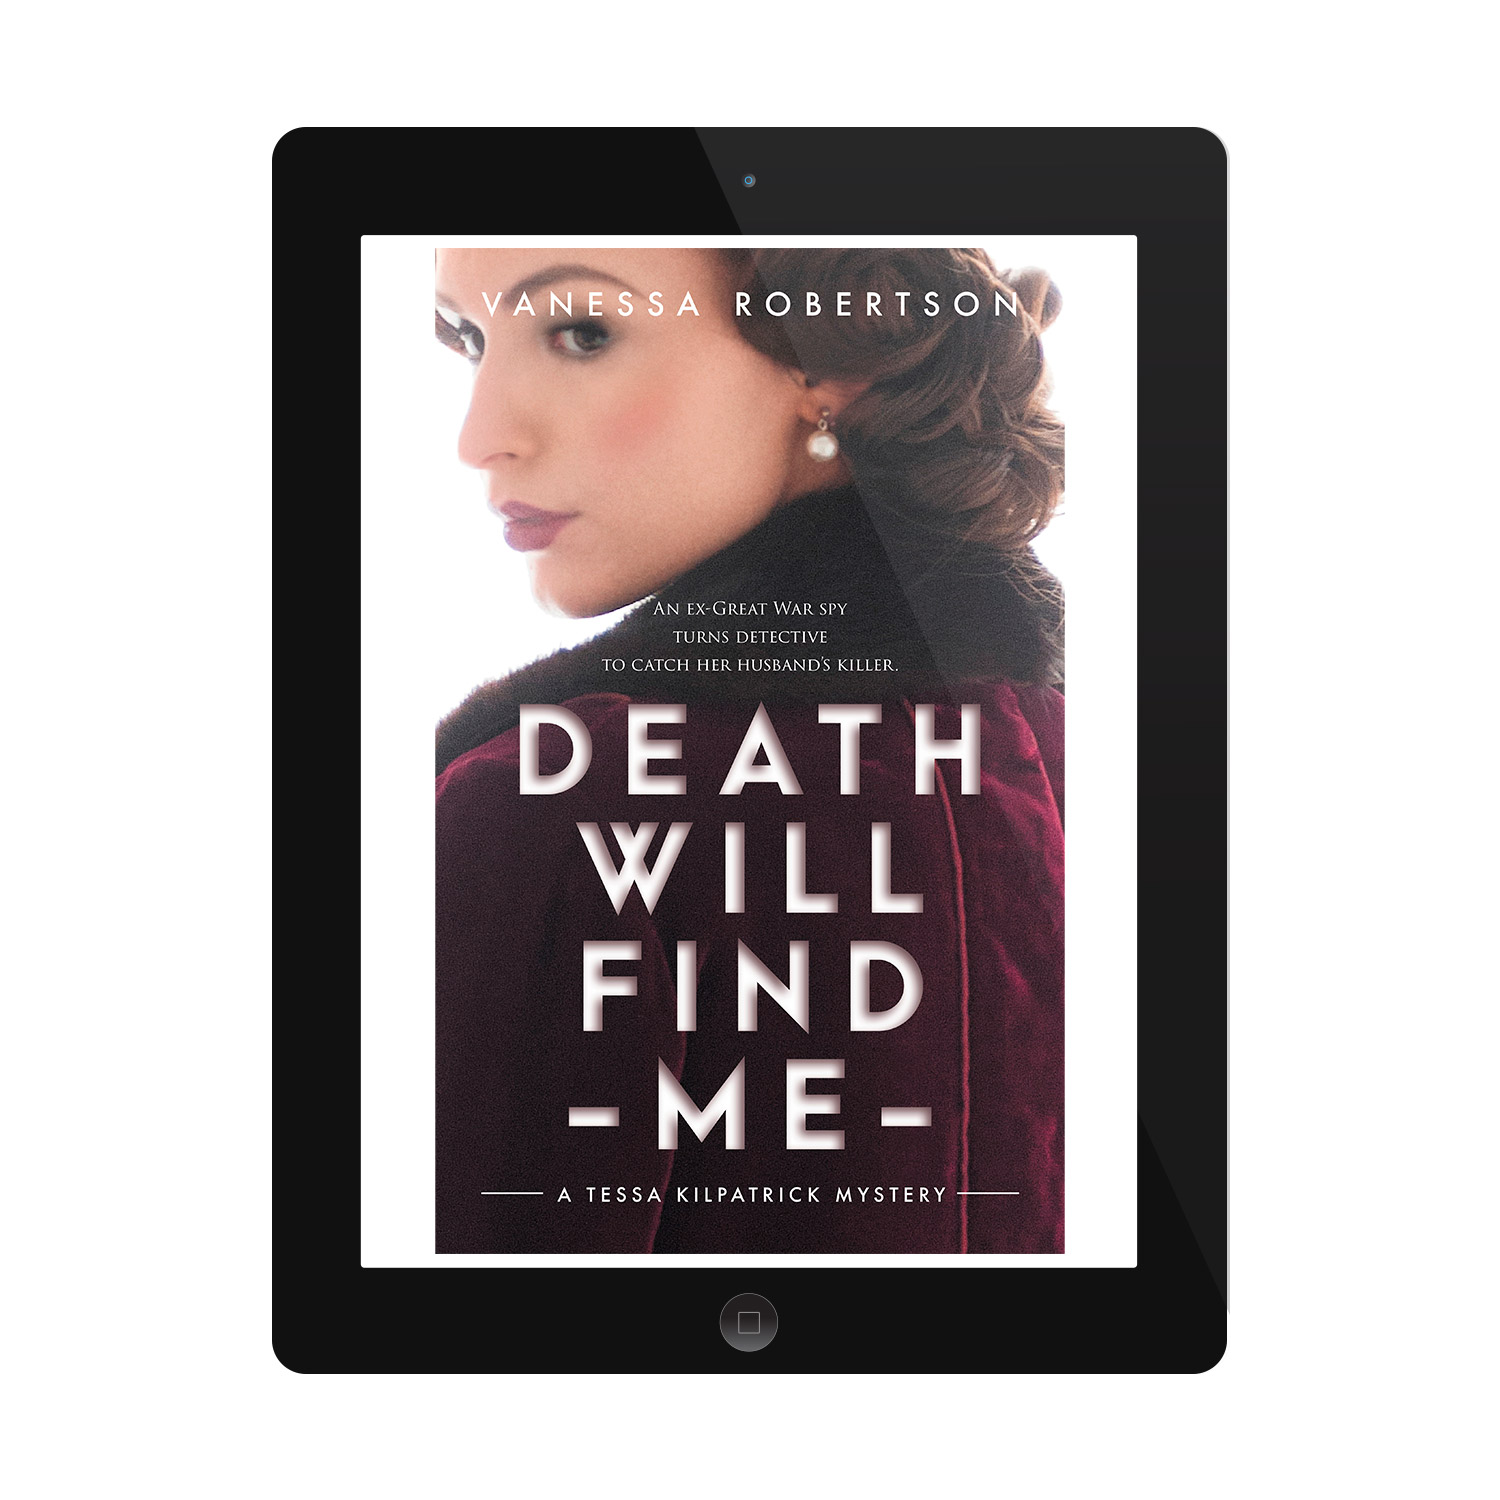 'Death Will Find Me' is a female-centric, between-the-wars mystery thriller. The author is Vanessa Robertson. The book cover design and interior formatting are by Mark Thomas. To learn more about what Mark could do for your book, please visit coverness.com.